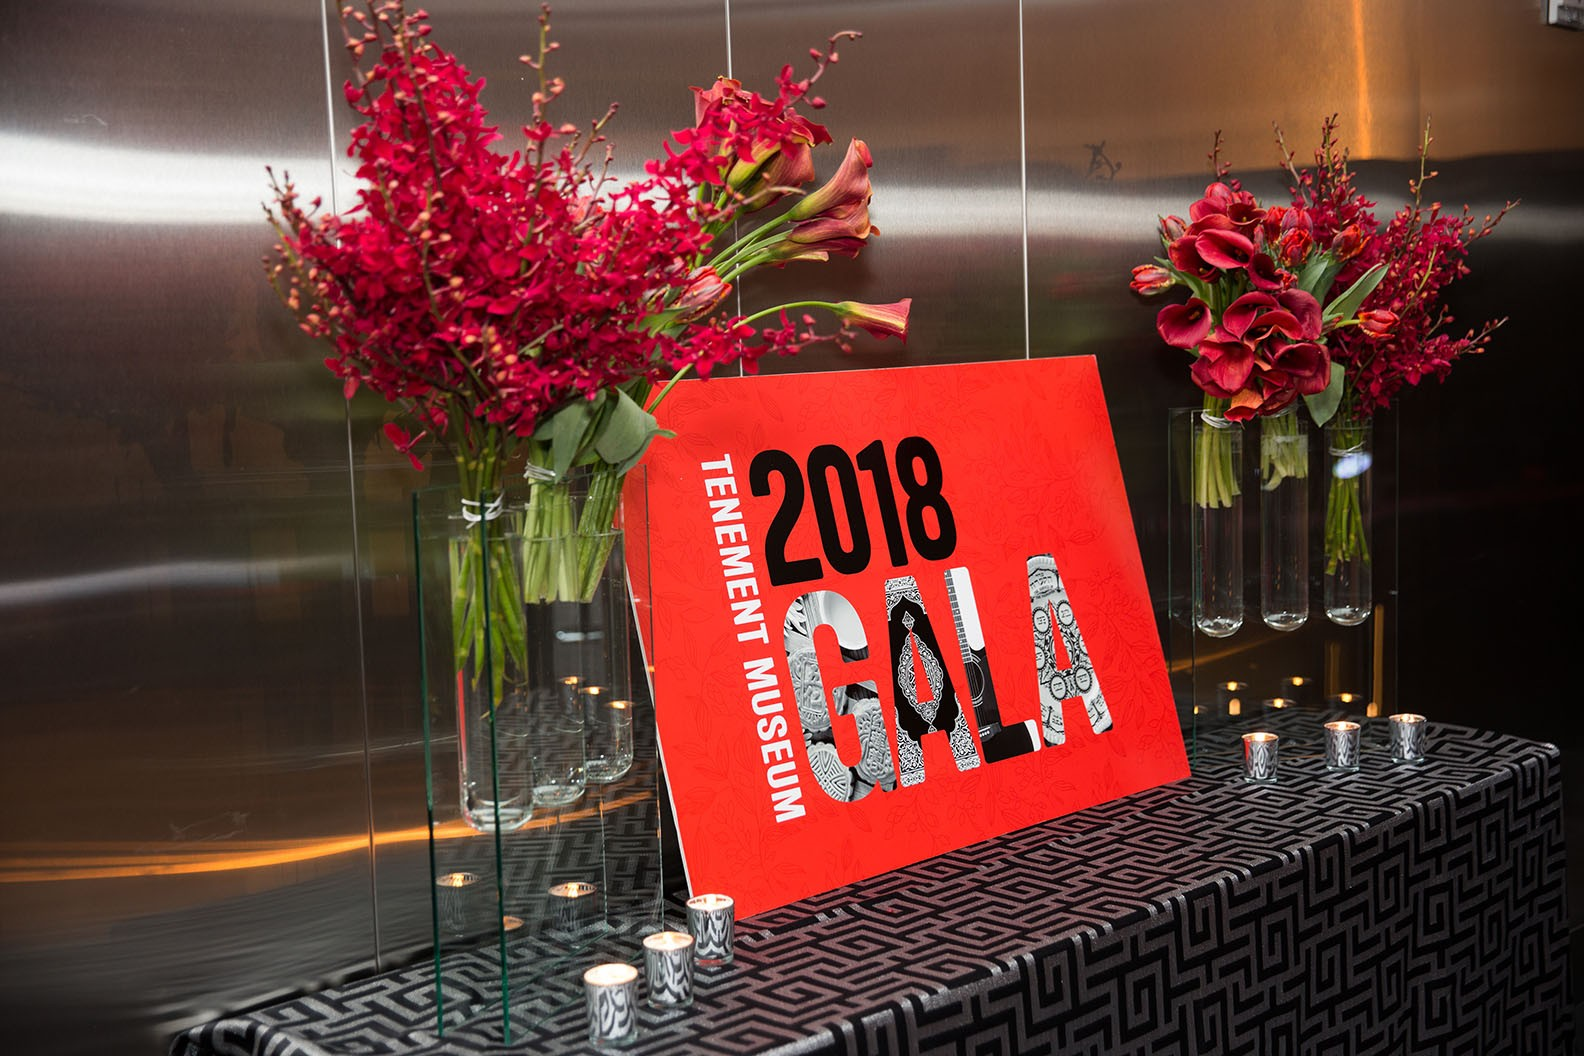 Gala 2018 sign on a table with flowers